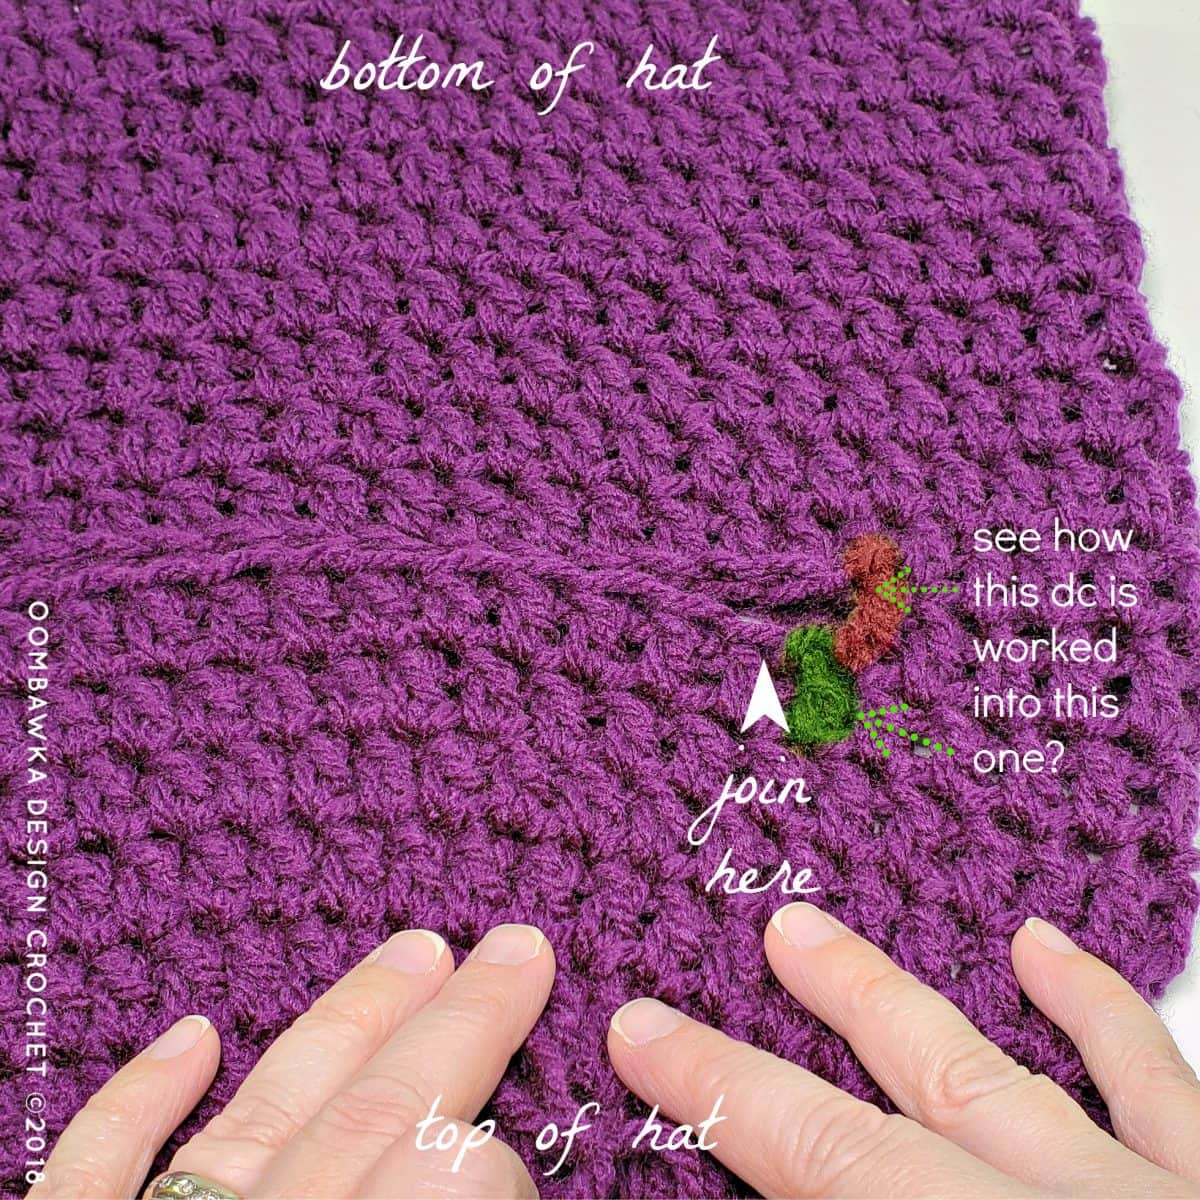 Winter Horseback Riding Helmet Cover Pattern where to join Part 2 Oombawka Design Crochet